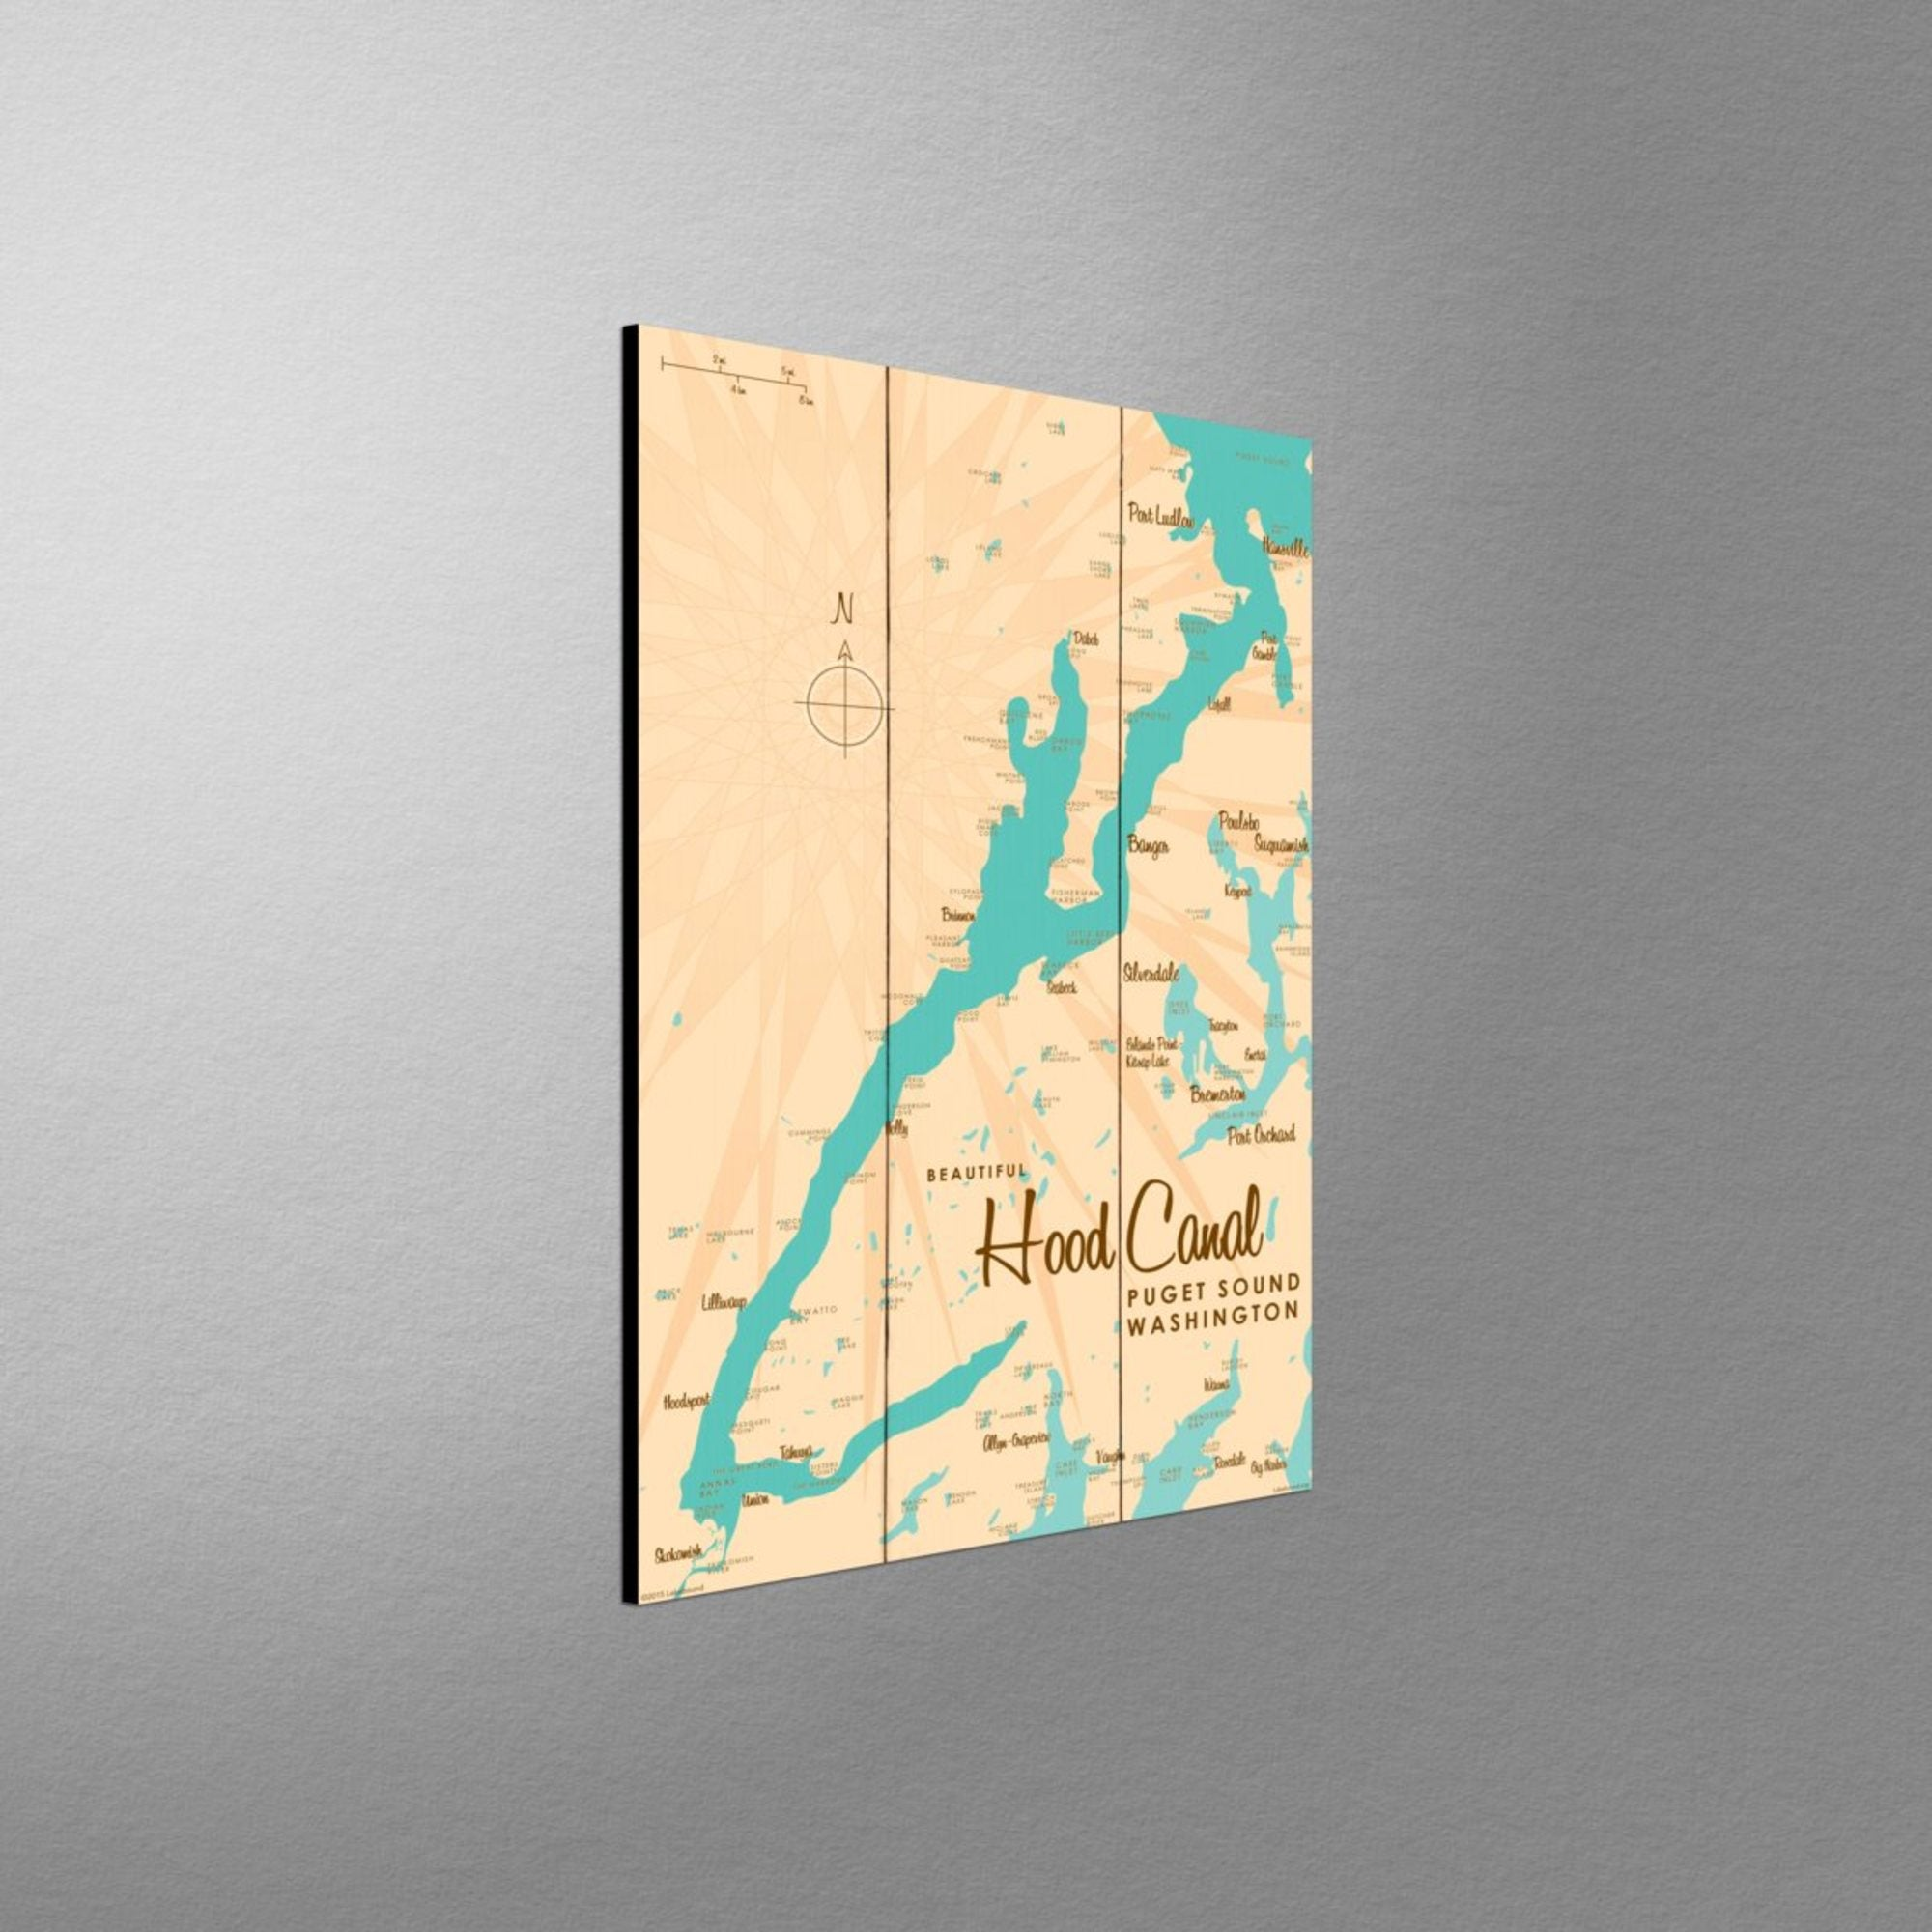 Hood Canal Washington, Wood Sign Map Art